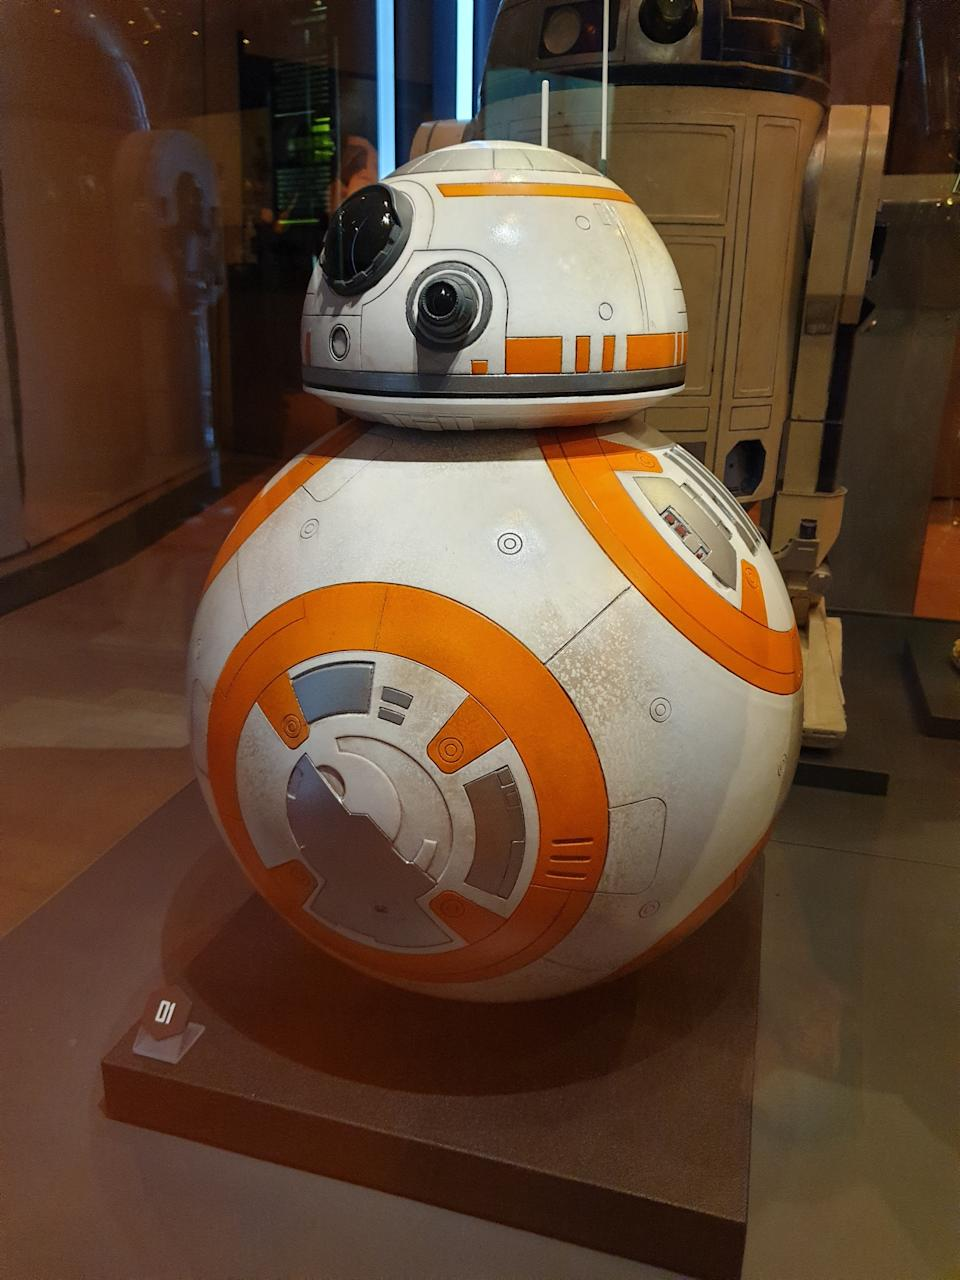 Prop of astromech droid BB-8 from Star Wars: The Force Awakens at the Star Wars Identities exhibition in Singapore at the Artscience Museum. (Photo: Teng Yong Ping)